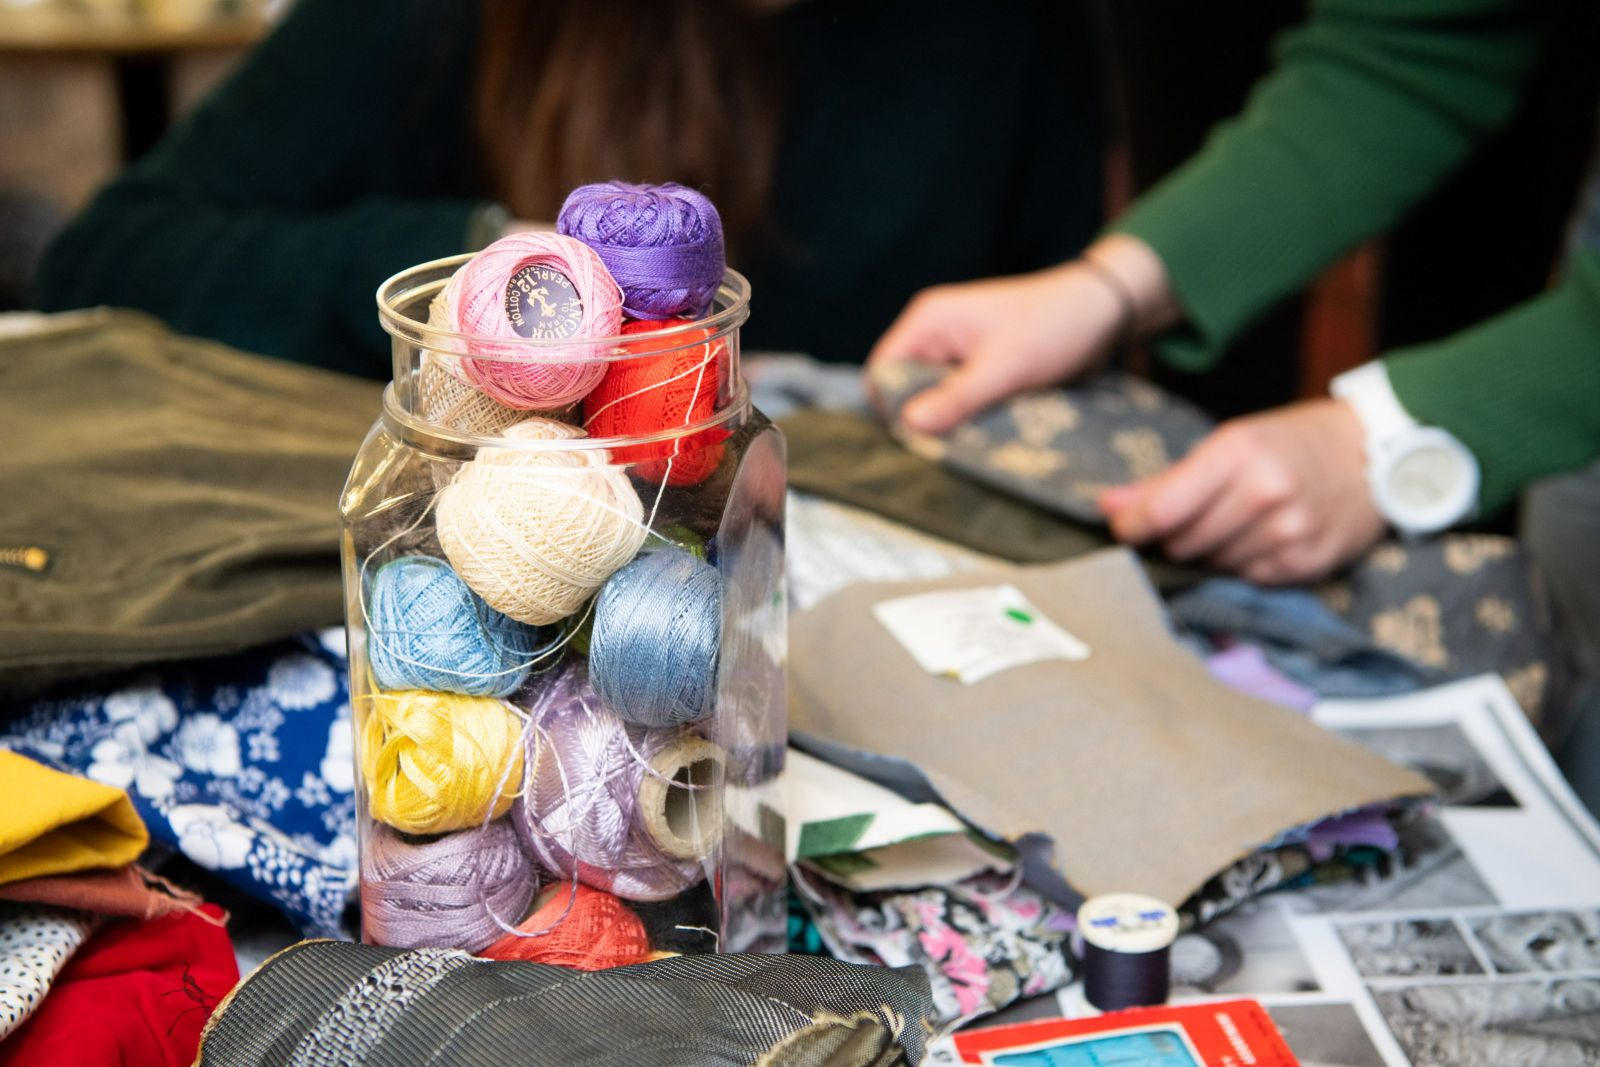 Large jar of coloured thread and sewing materials.